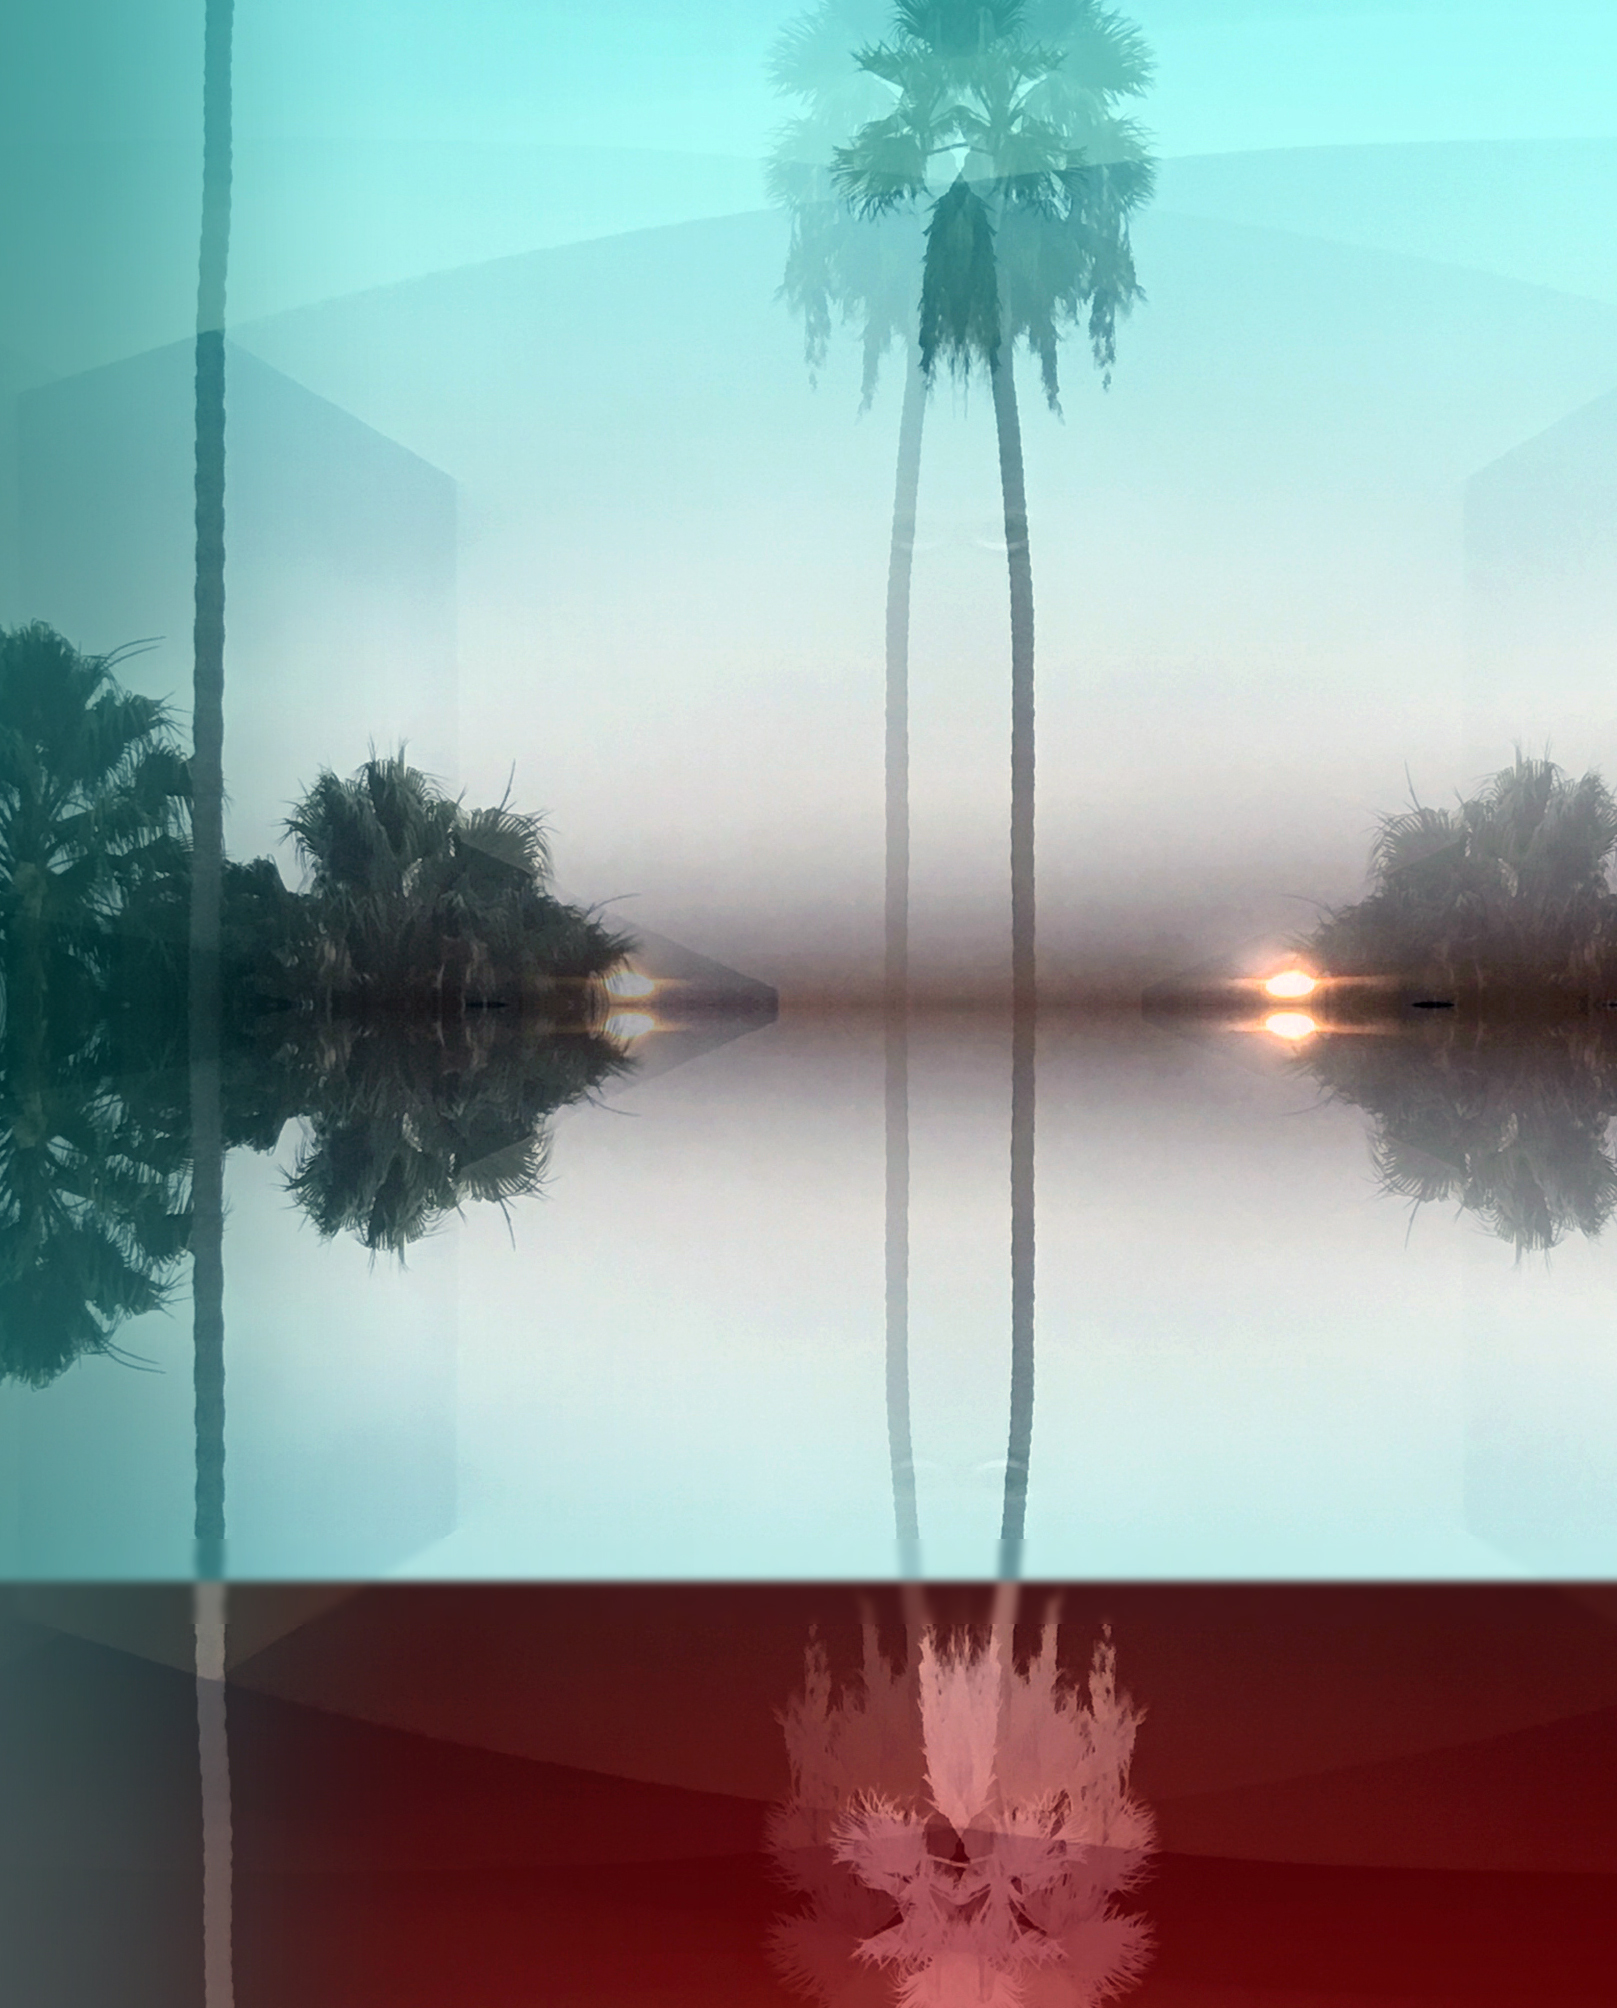 30 x 24 palmtree upside down mirrored Turqoise bottom red inverted.jpg